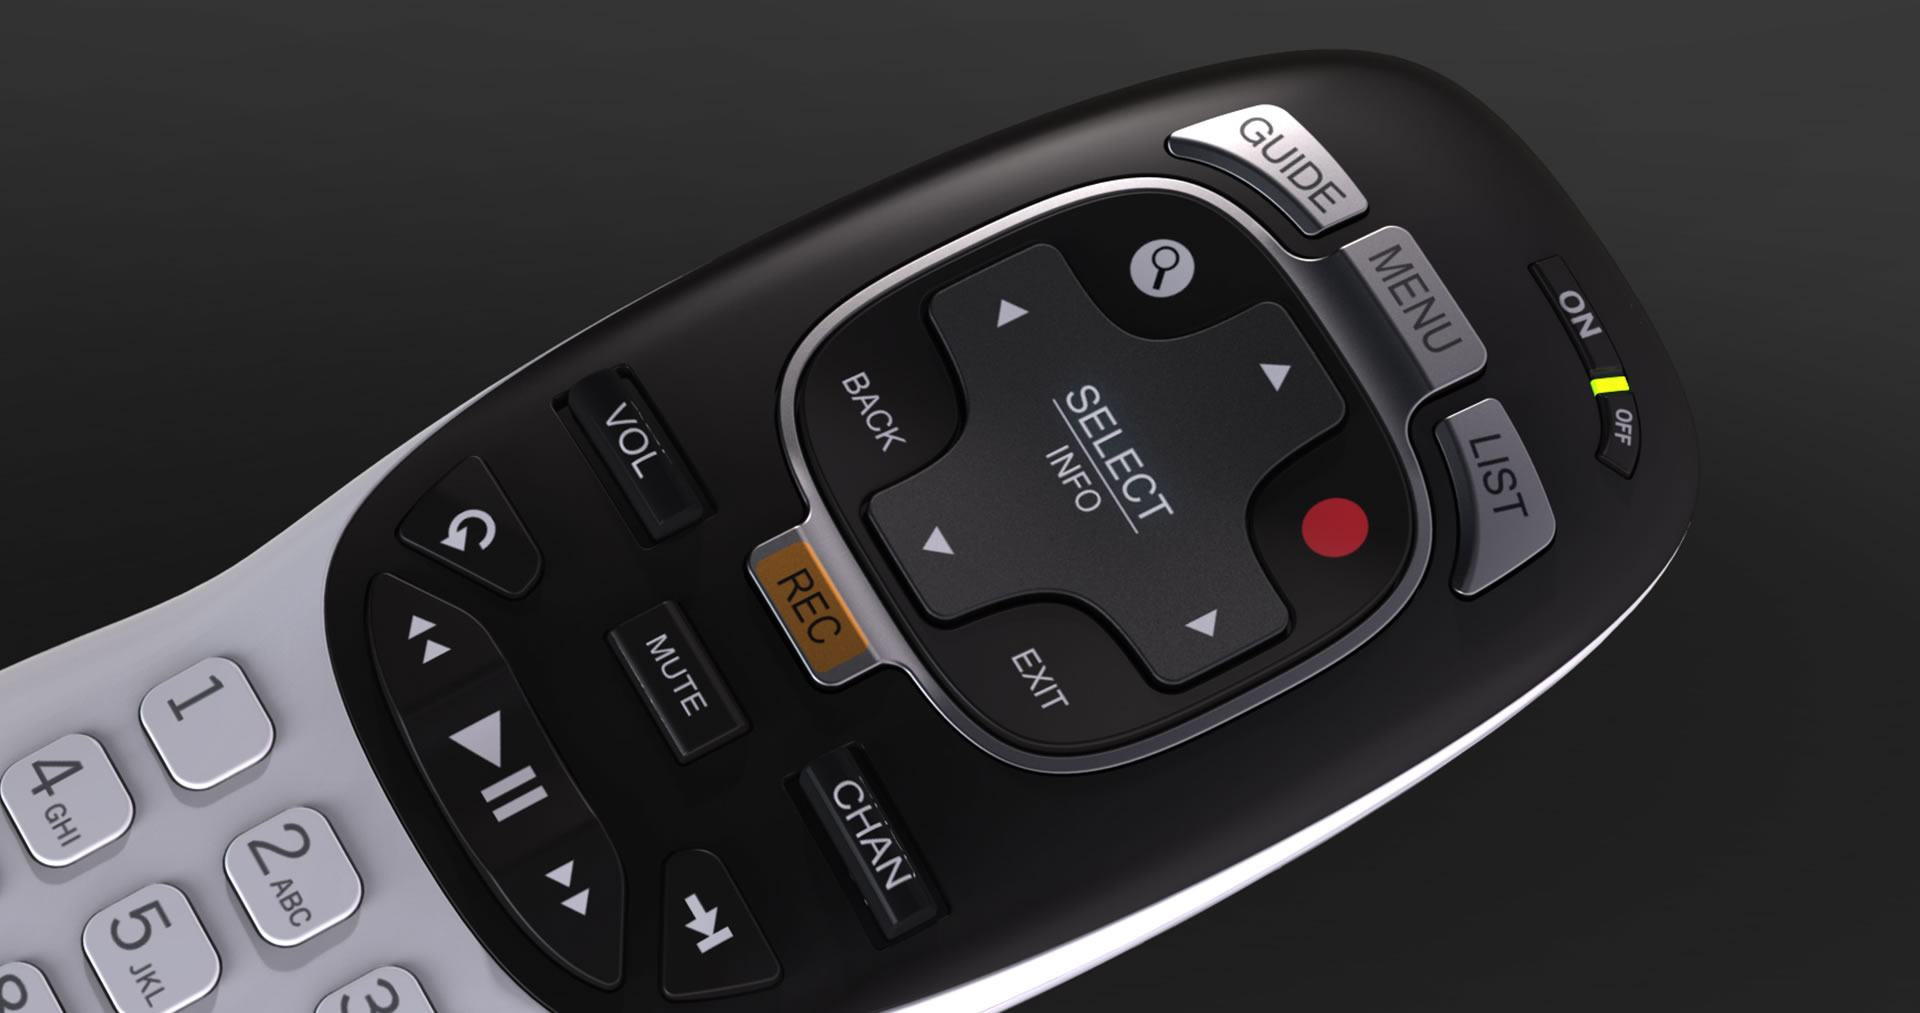 DirecTv remote control buttons detail